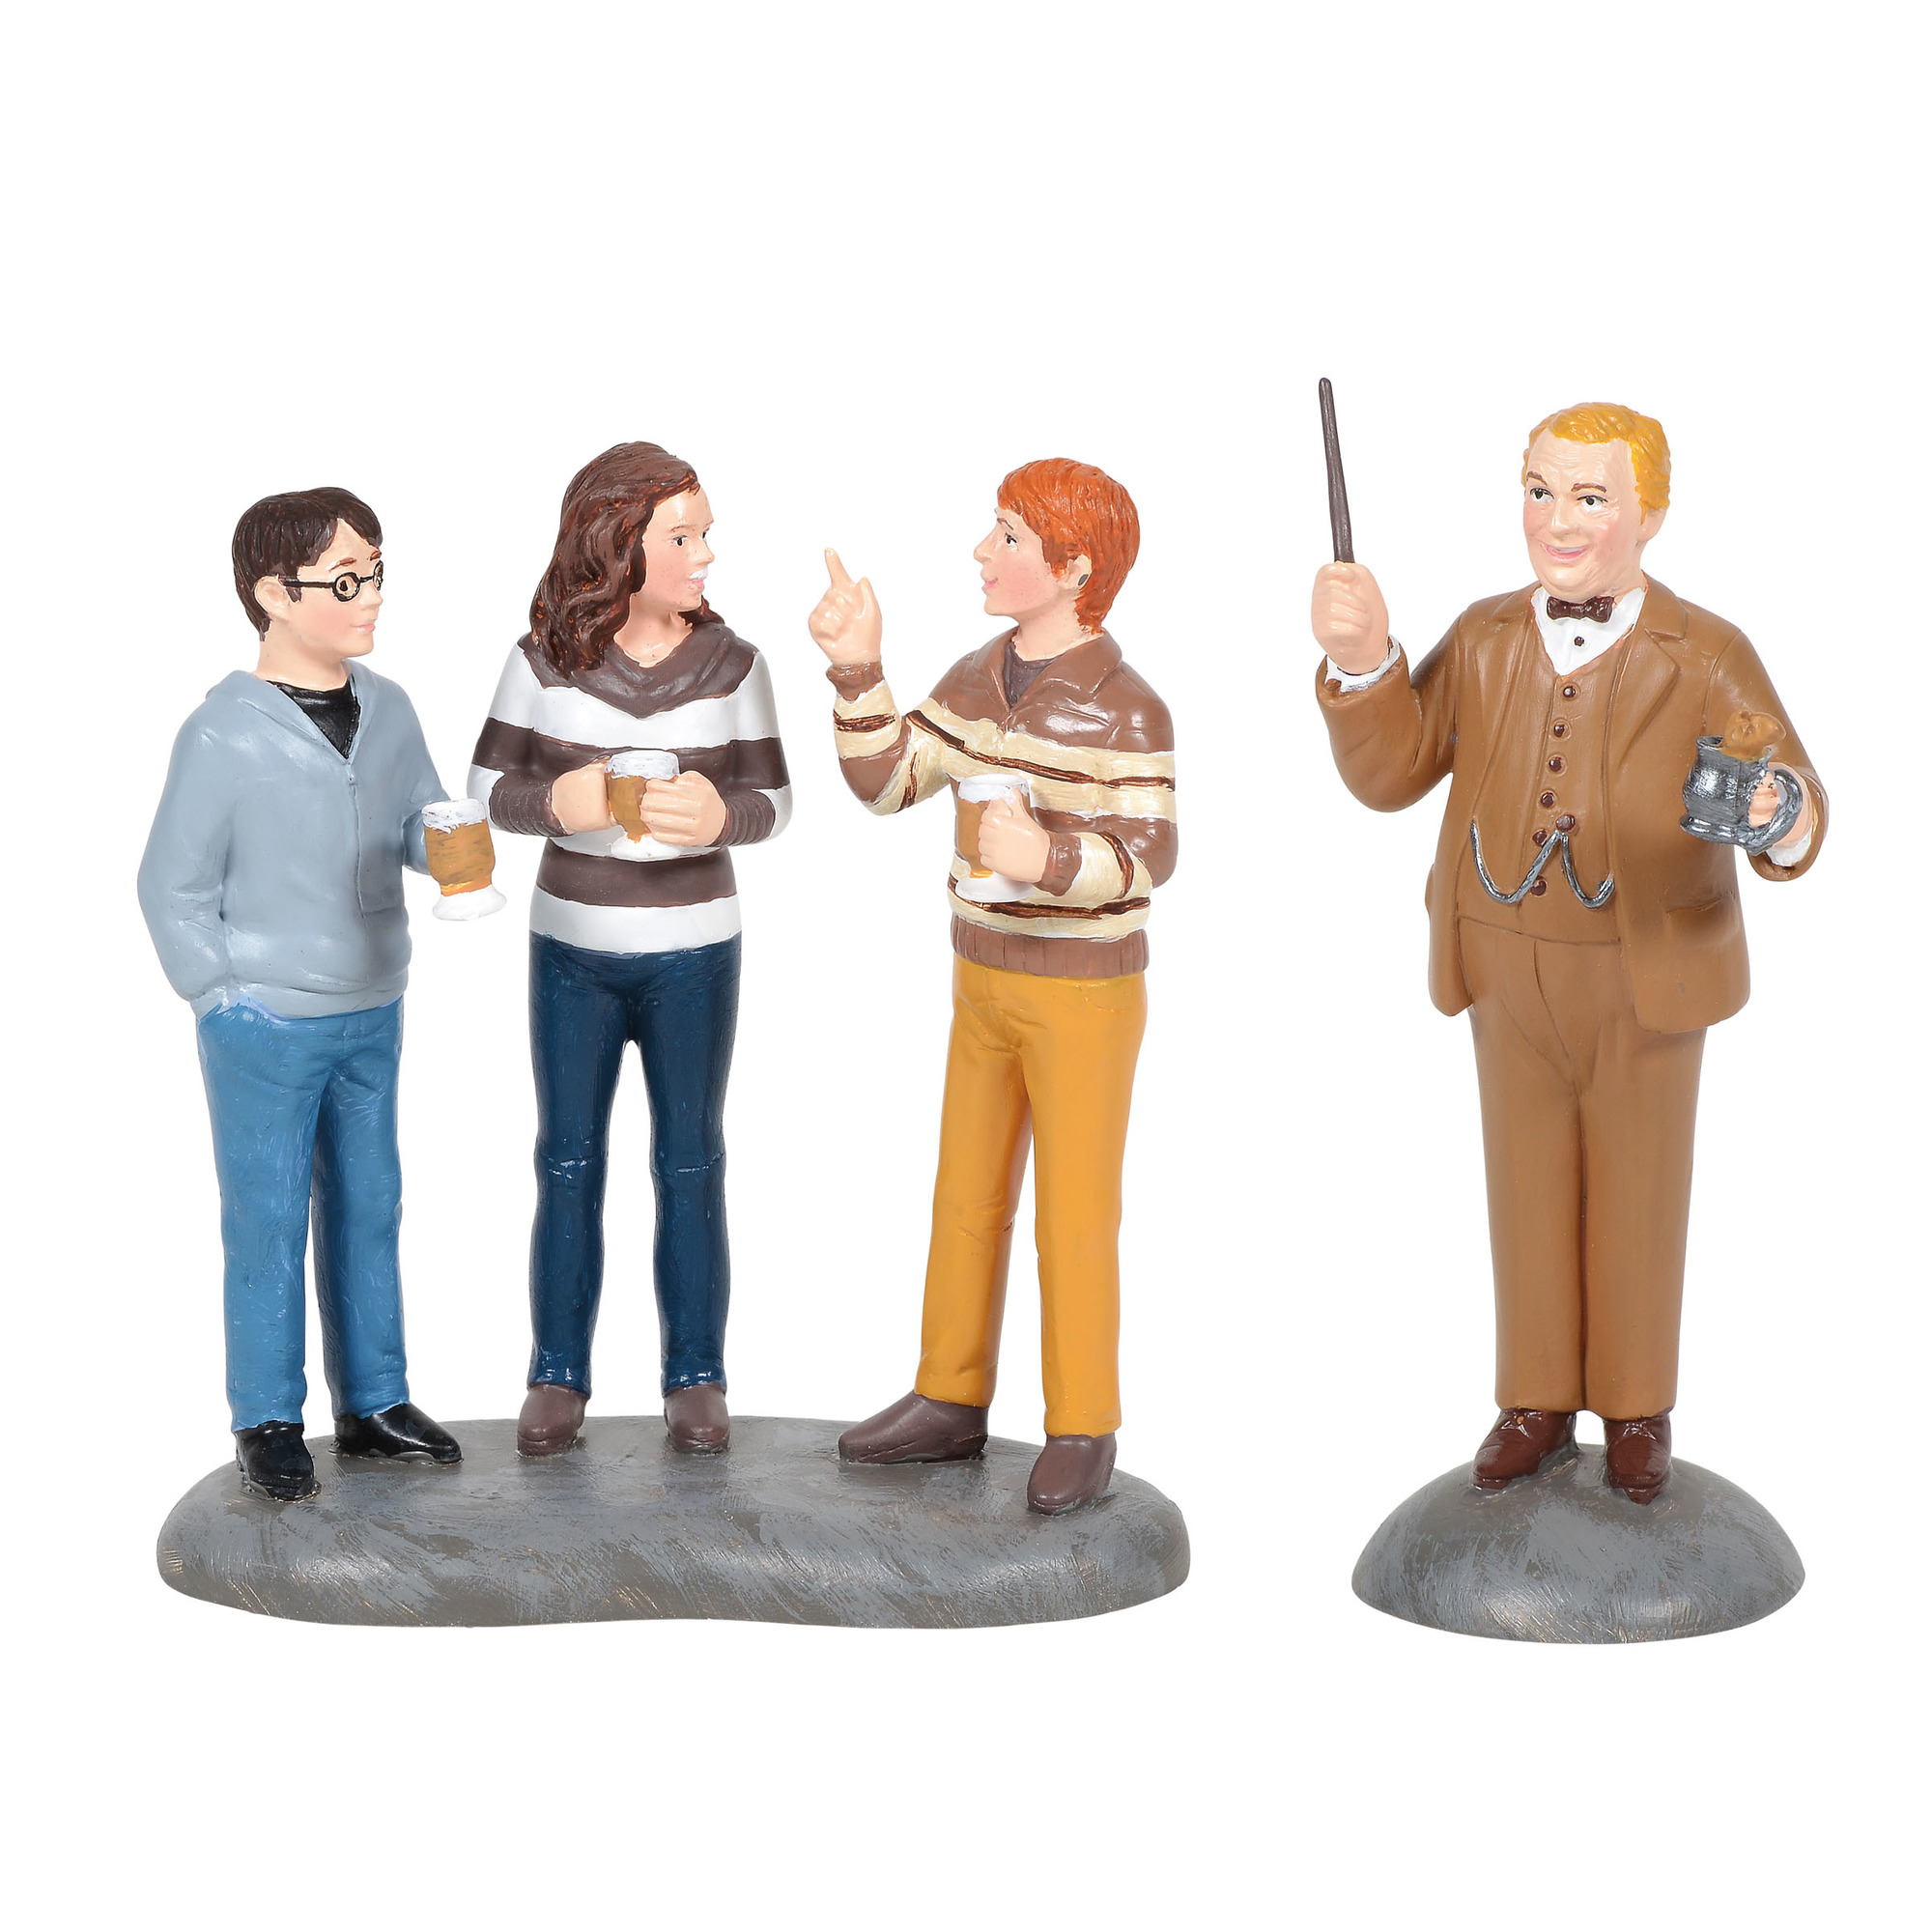 Universal Figure - Harry Potter Village - Professor Slughorn and the Trio